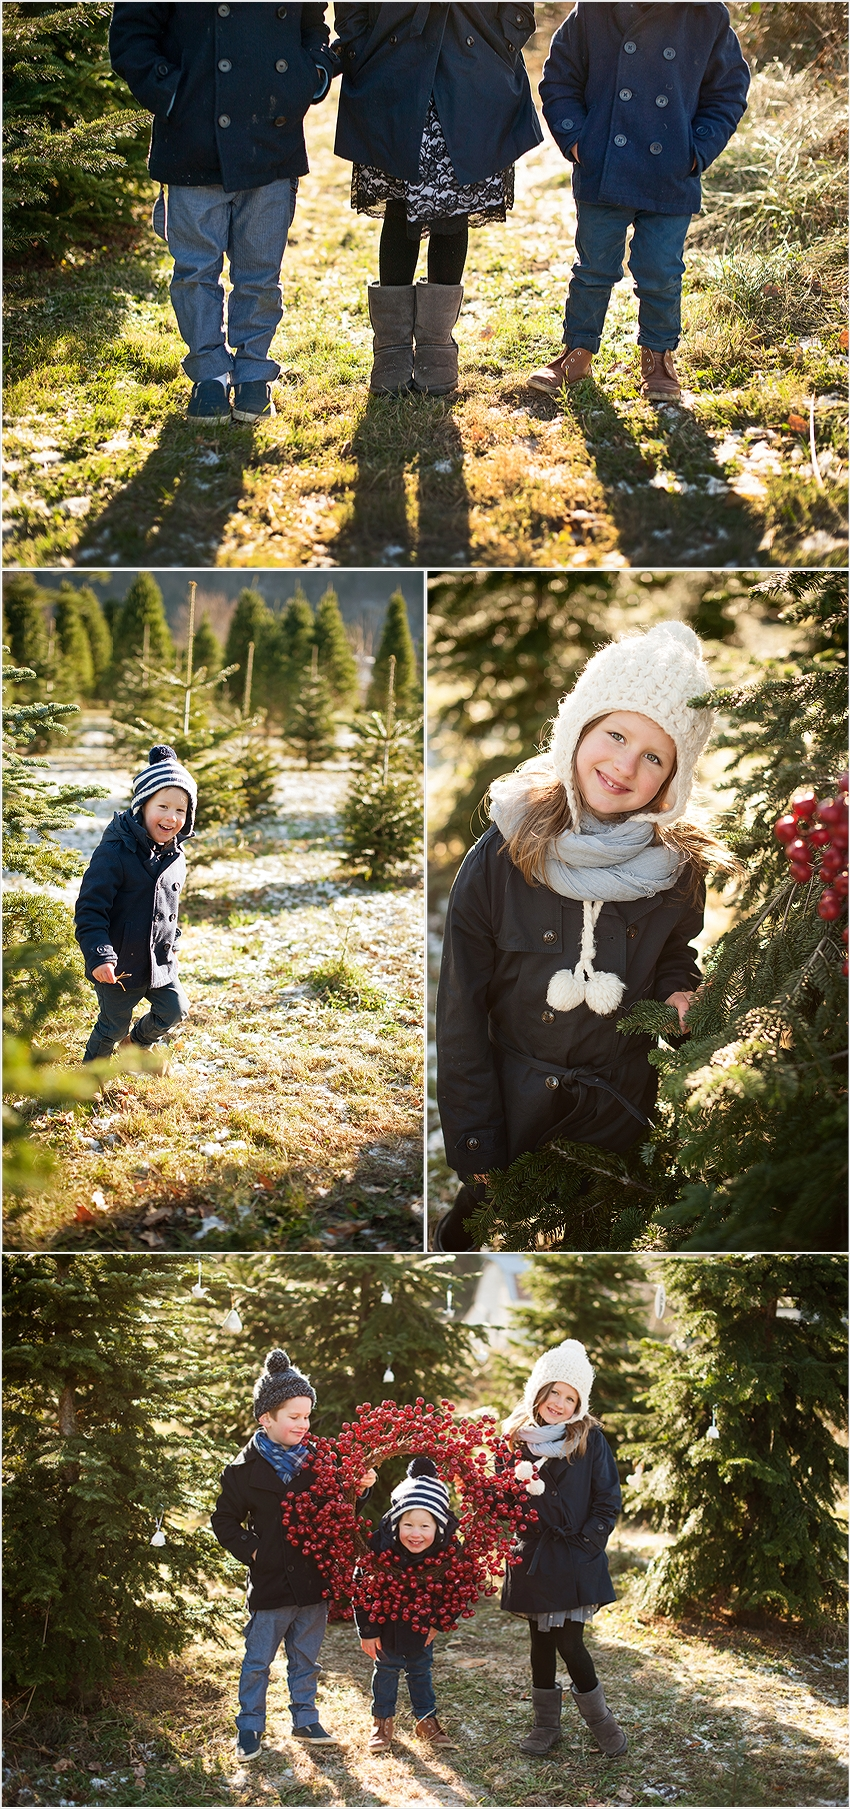 Christmas Tree Farm photos 006 (Side 6)